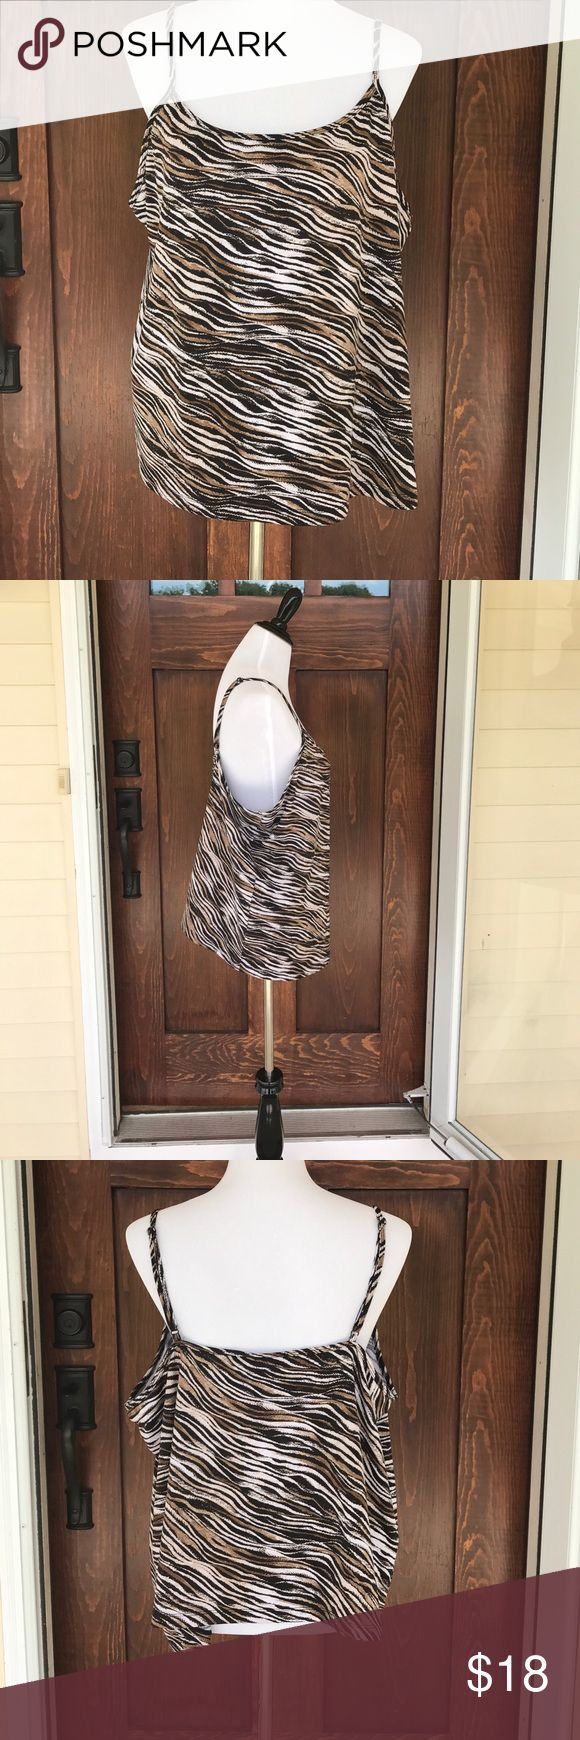 Lane Bryant Animal print stretchy tank/ cami top Adorable and comfortable tank/cami from Lane Bryant. Lane Bryant Tops Camisoles